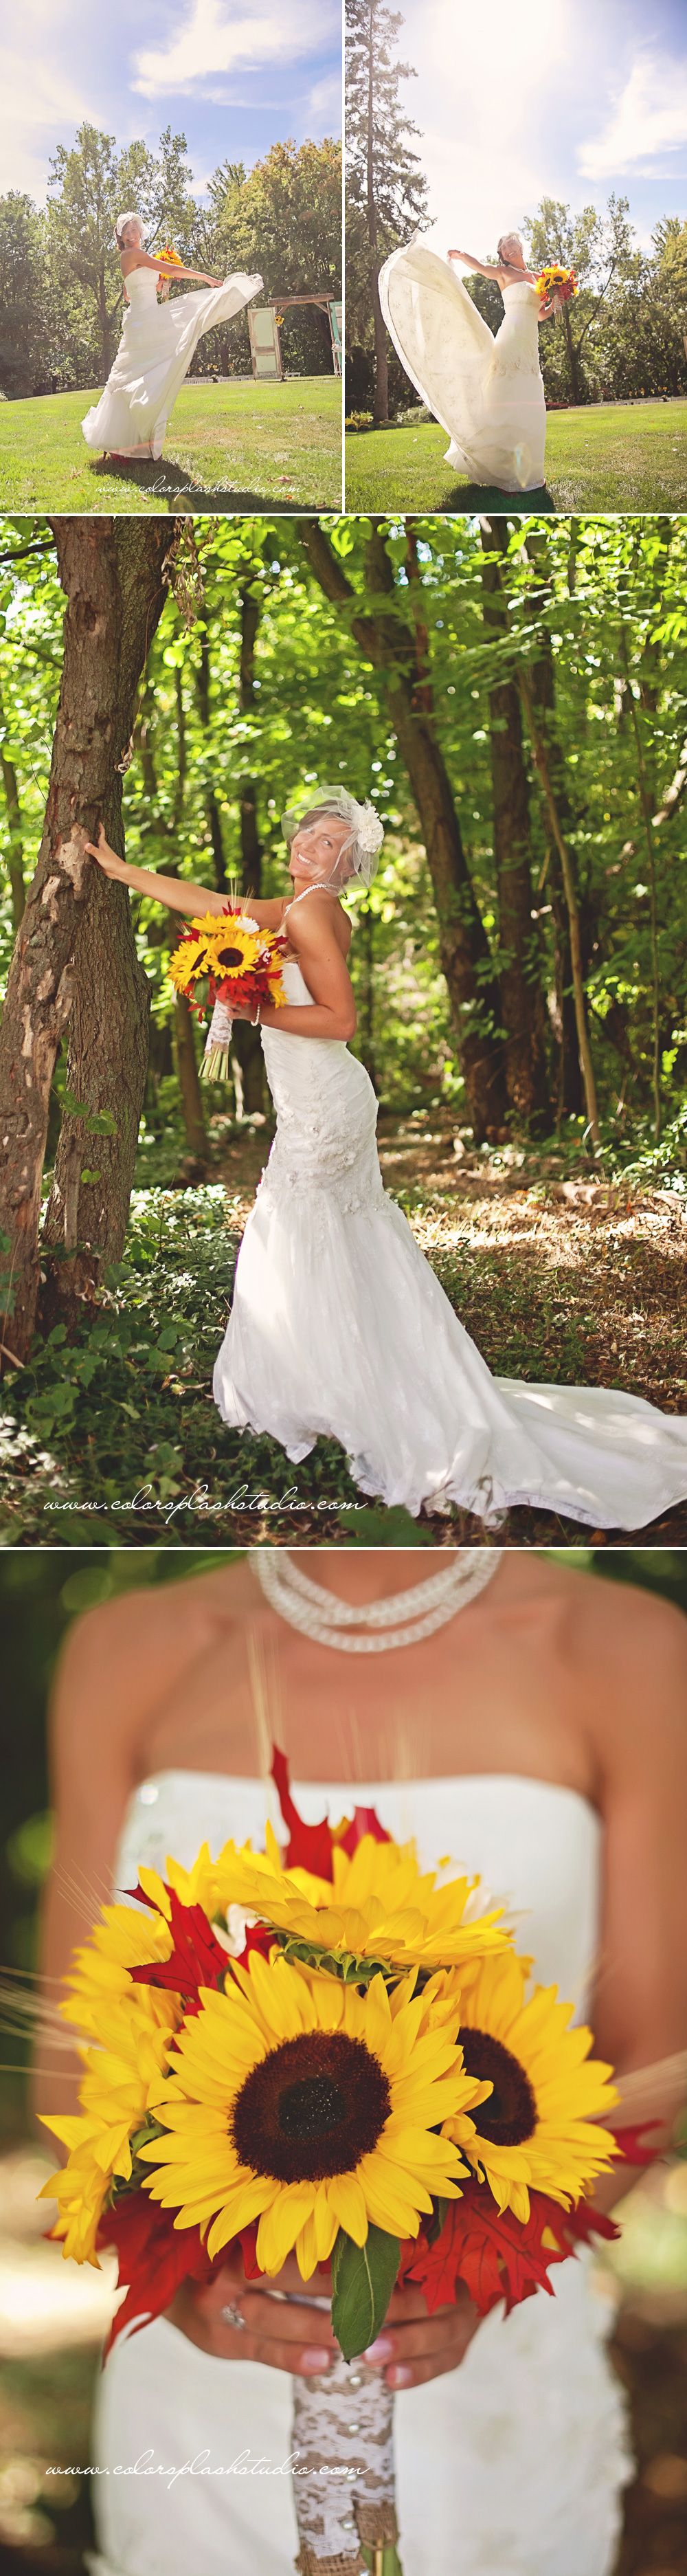 rustic-sunflower-wedding-4